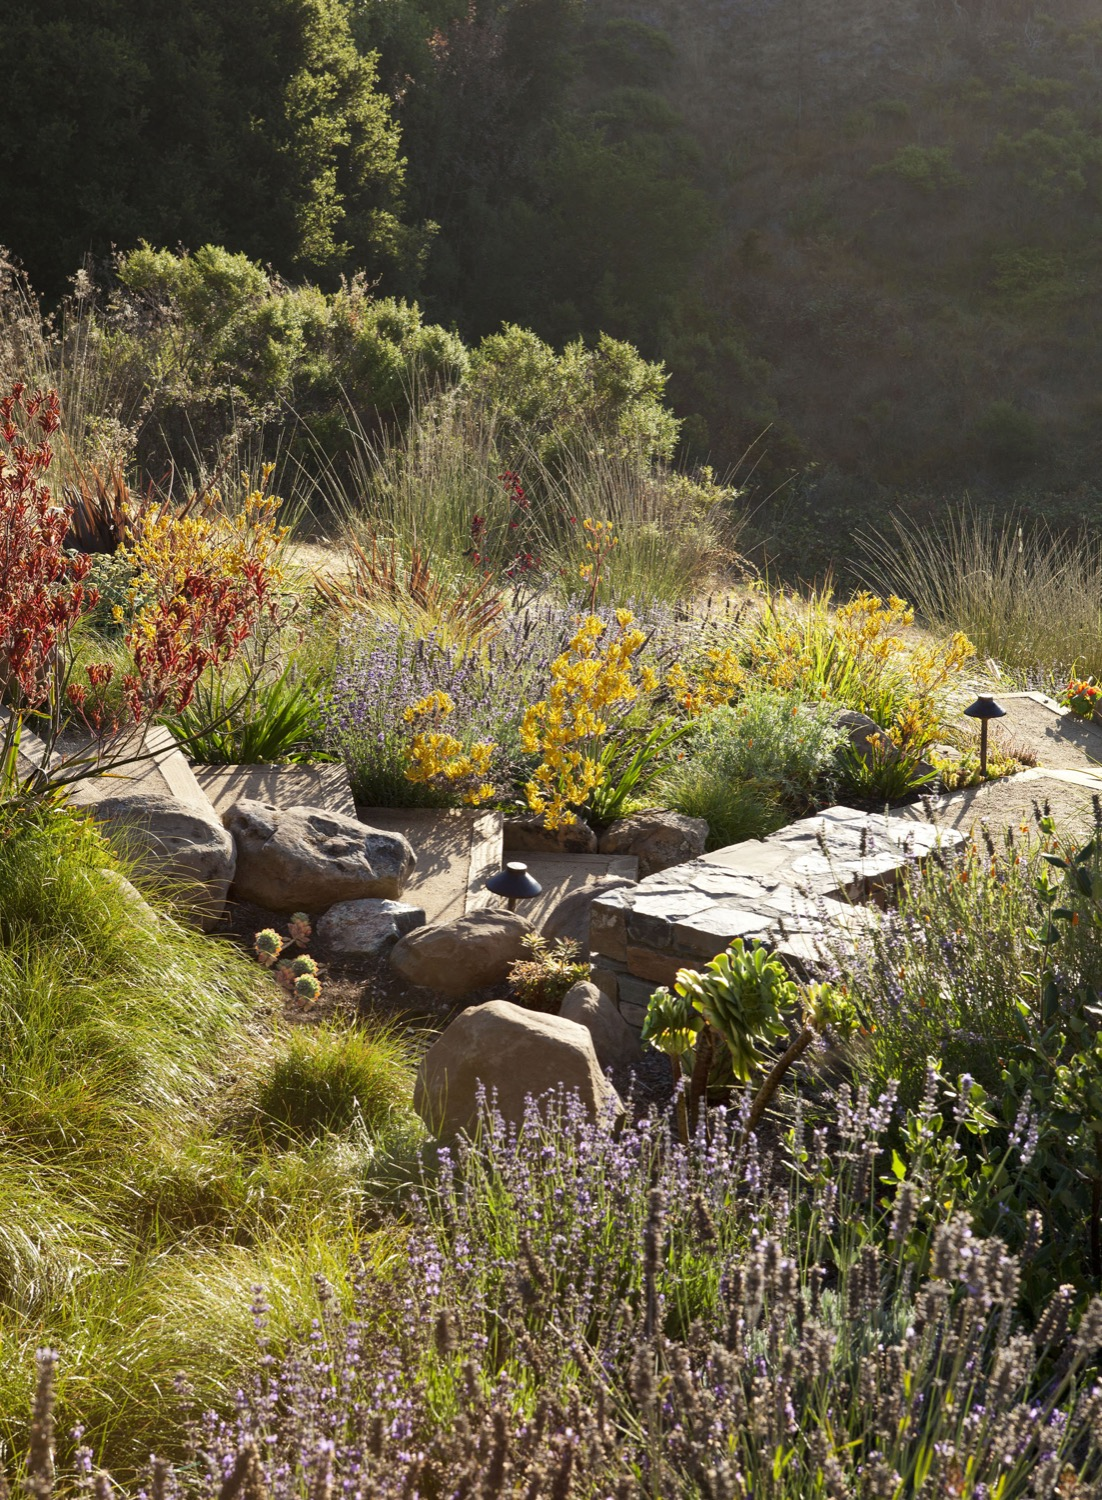 Boulders were reused after being excavated onsite, and now sit amongst colorful plantings.